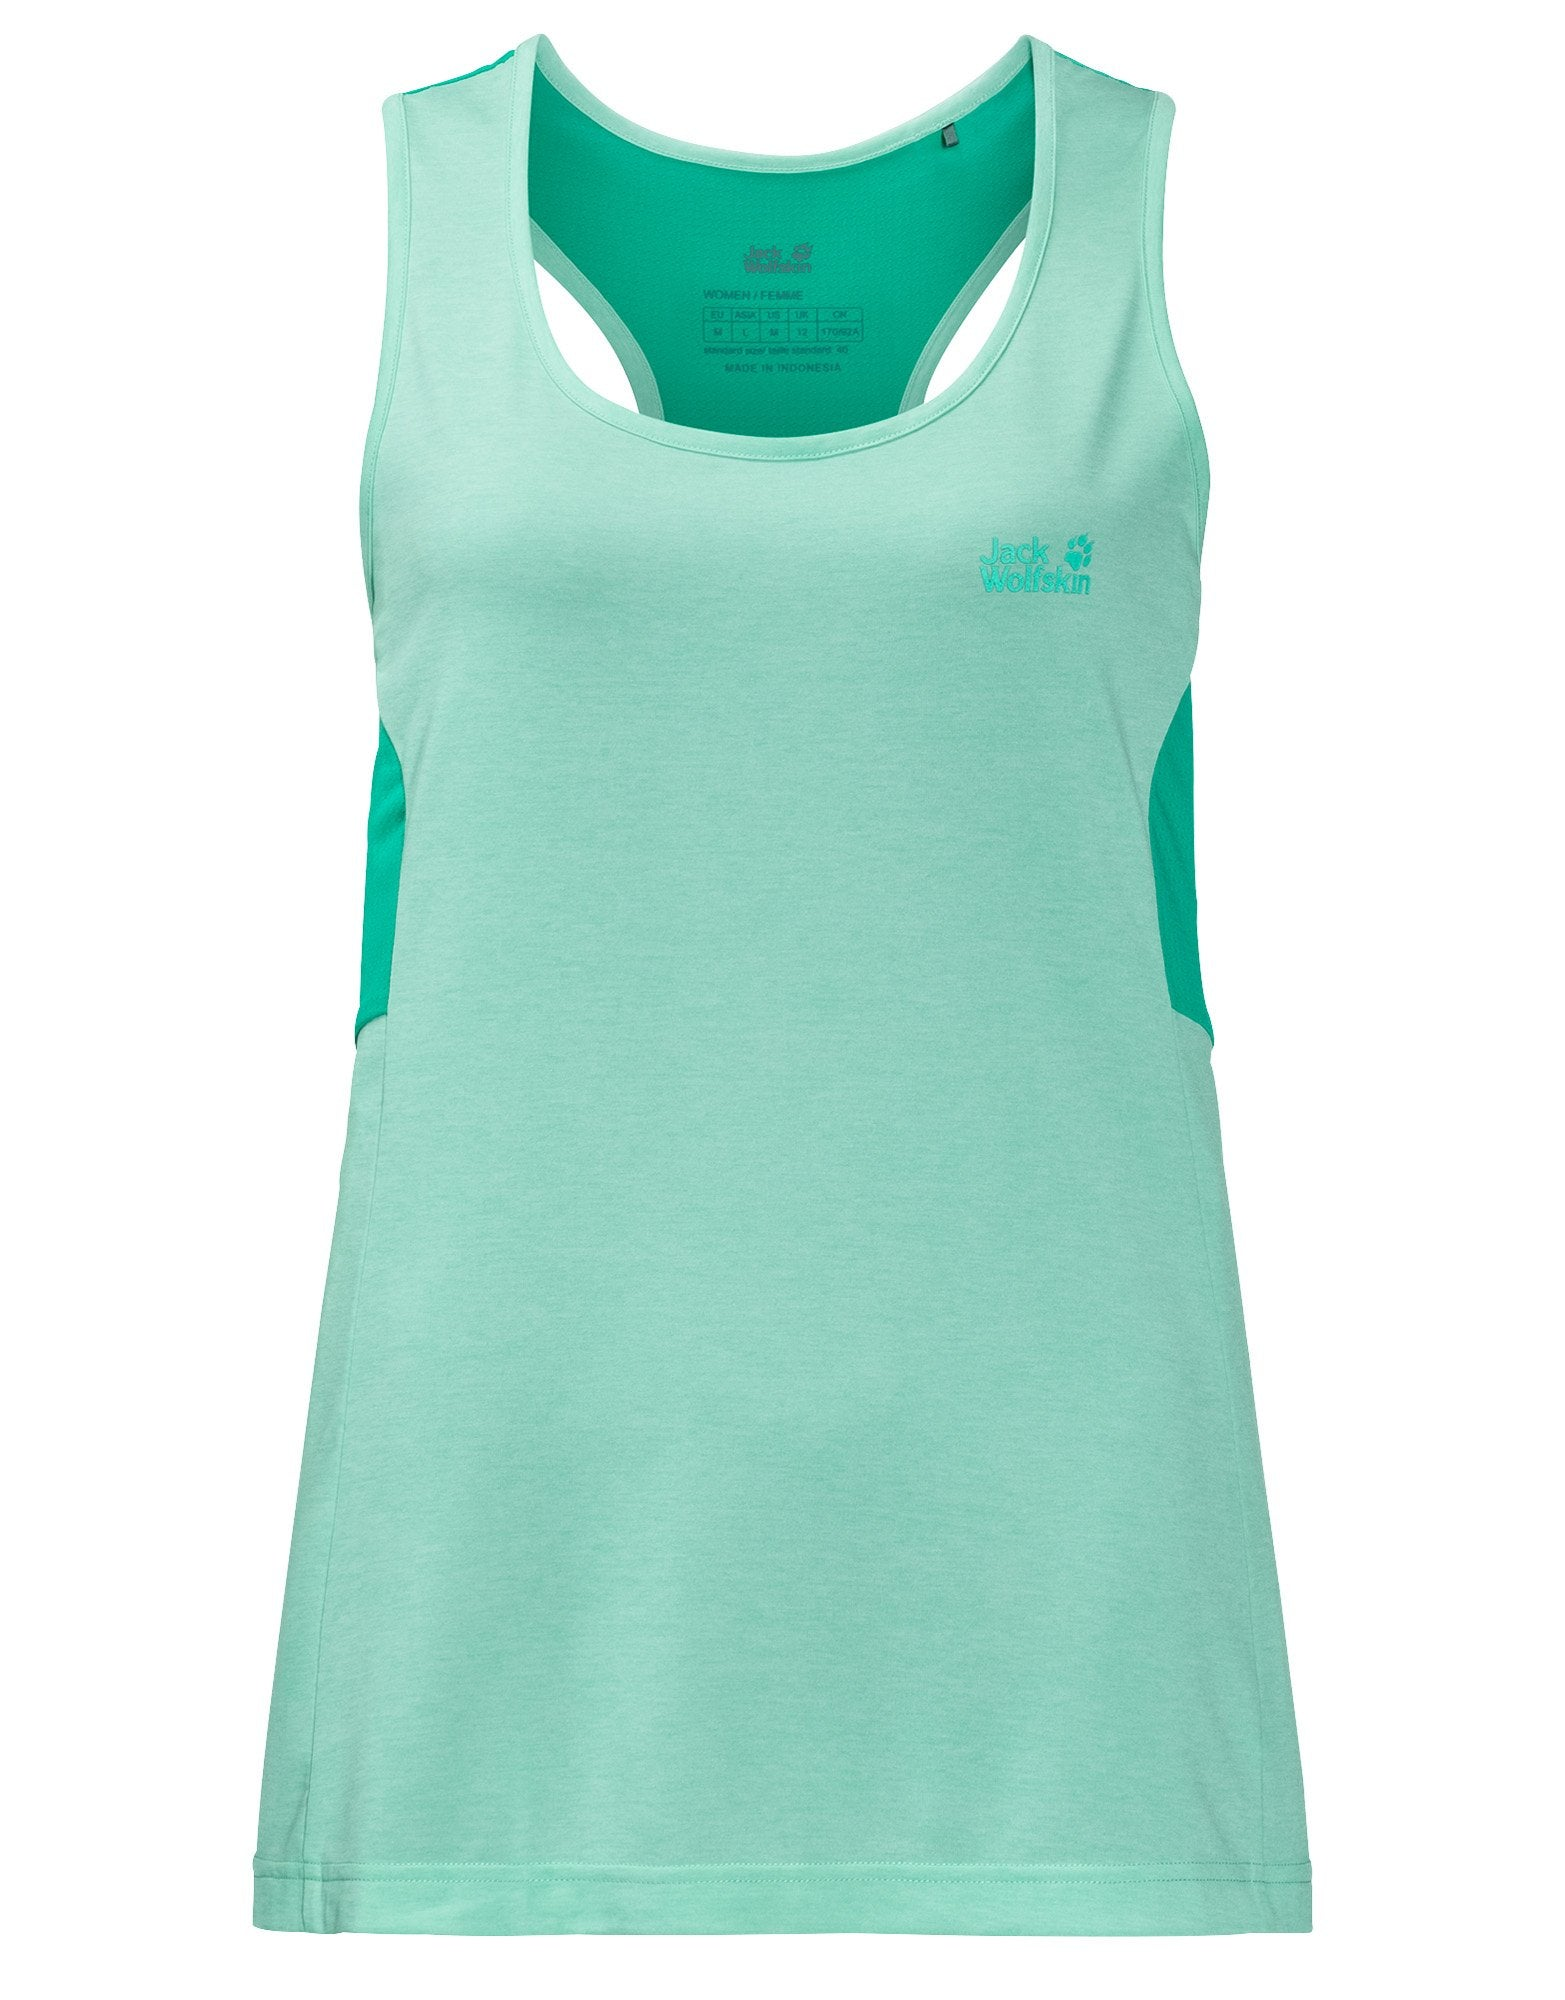 Womens Crosstrail Top - Pale Mint - Small Green